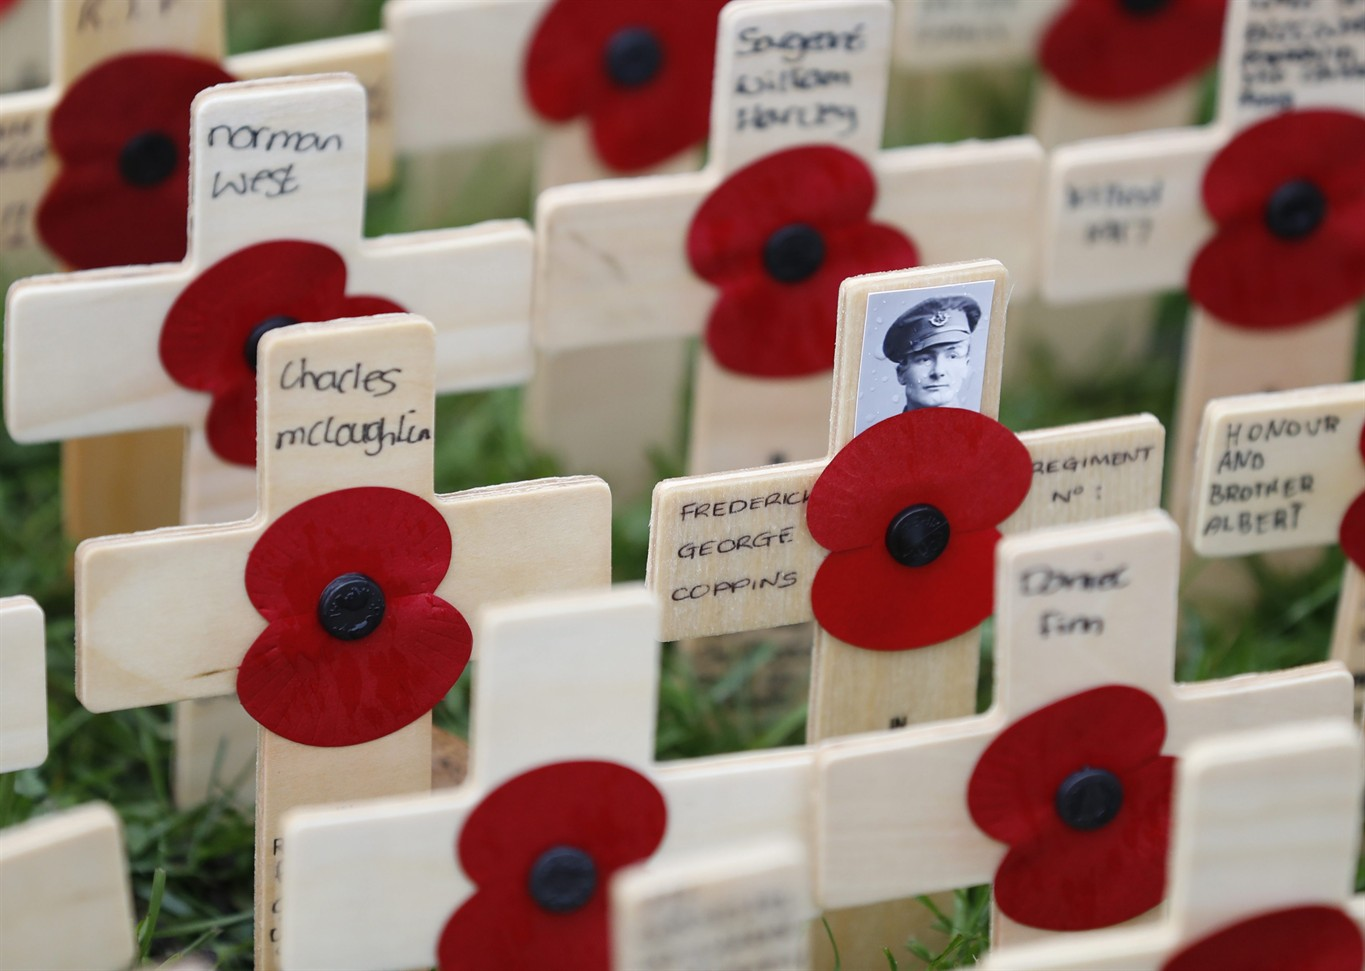 Live coverage of Remembrance Day parade and ceremony on ...